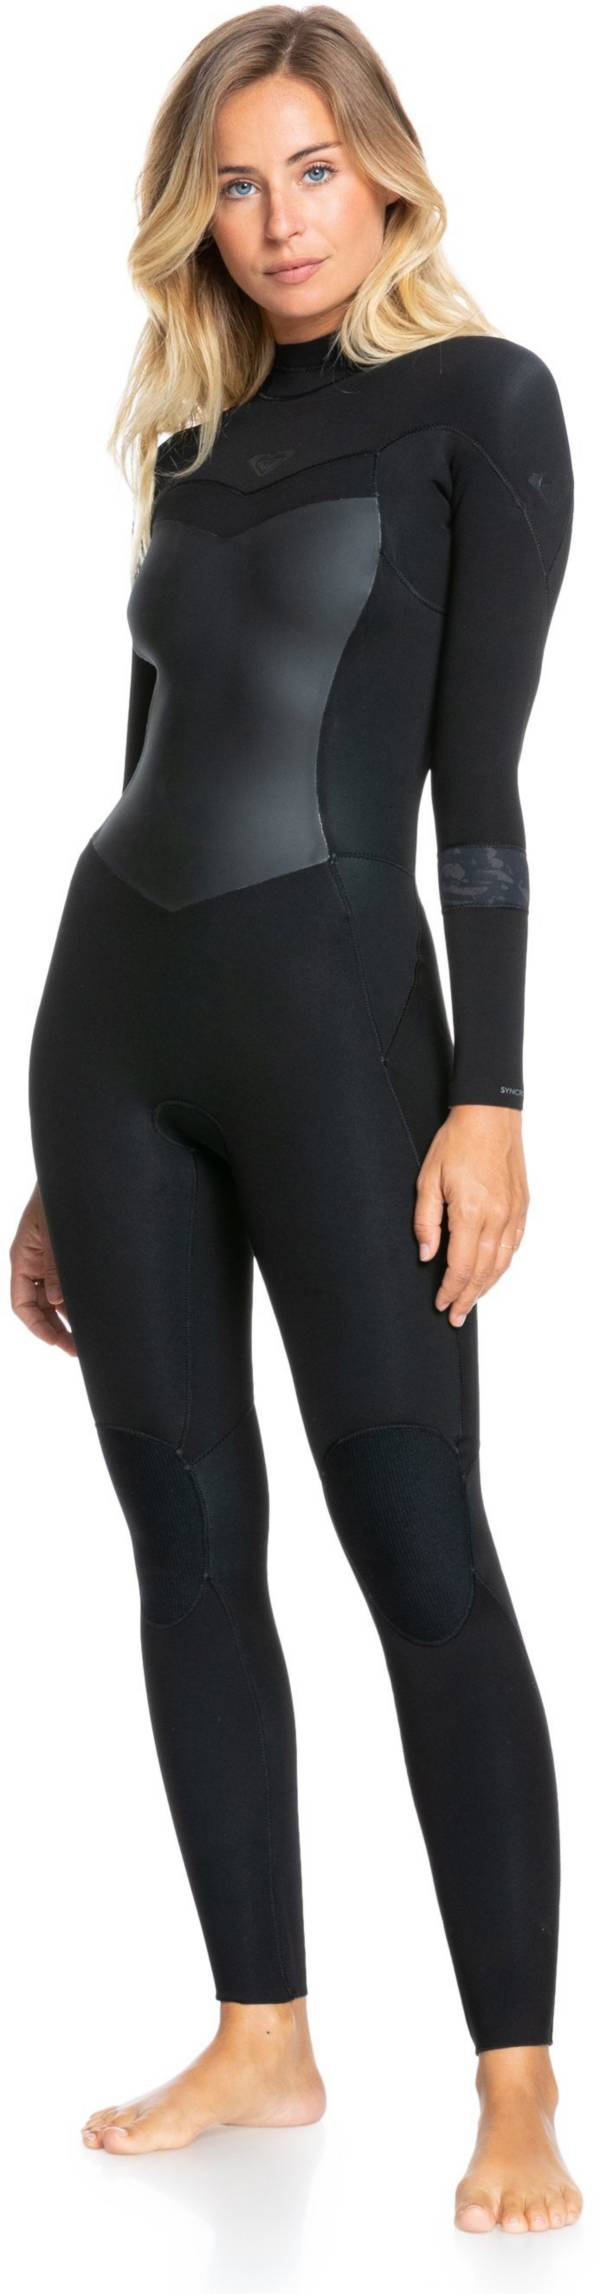 Roxy 3/2mm Syncro Back Zip Wetsuit product image